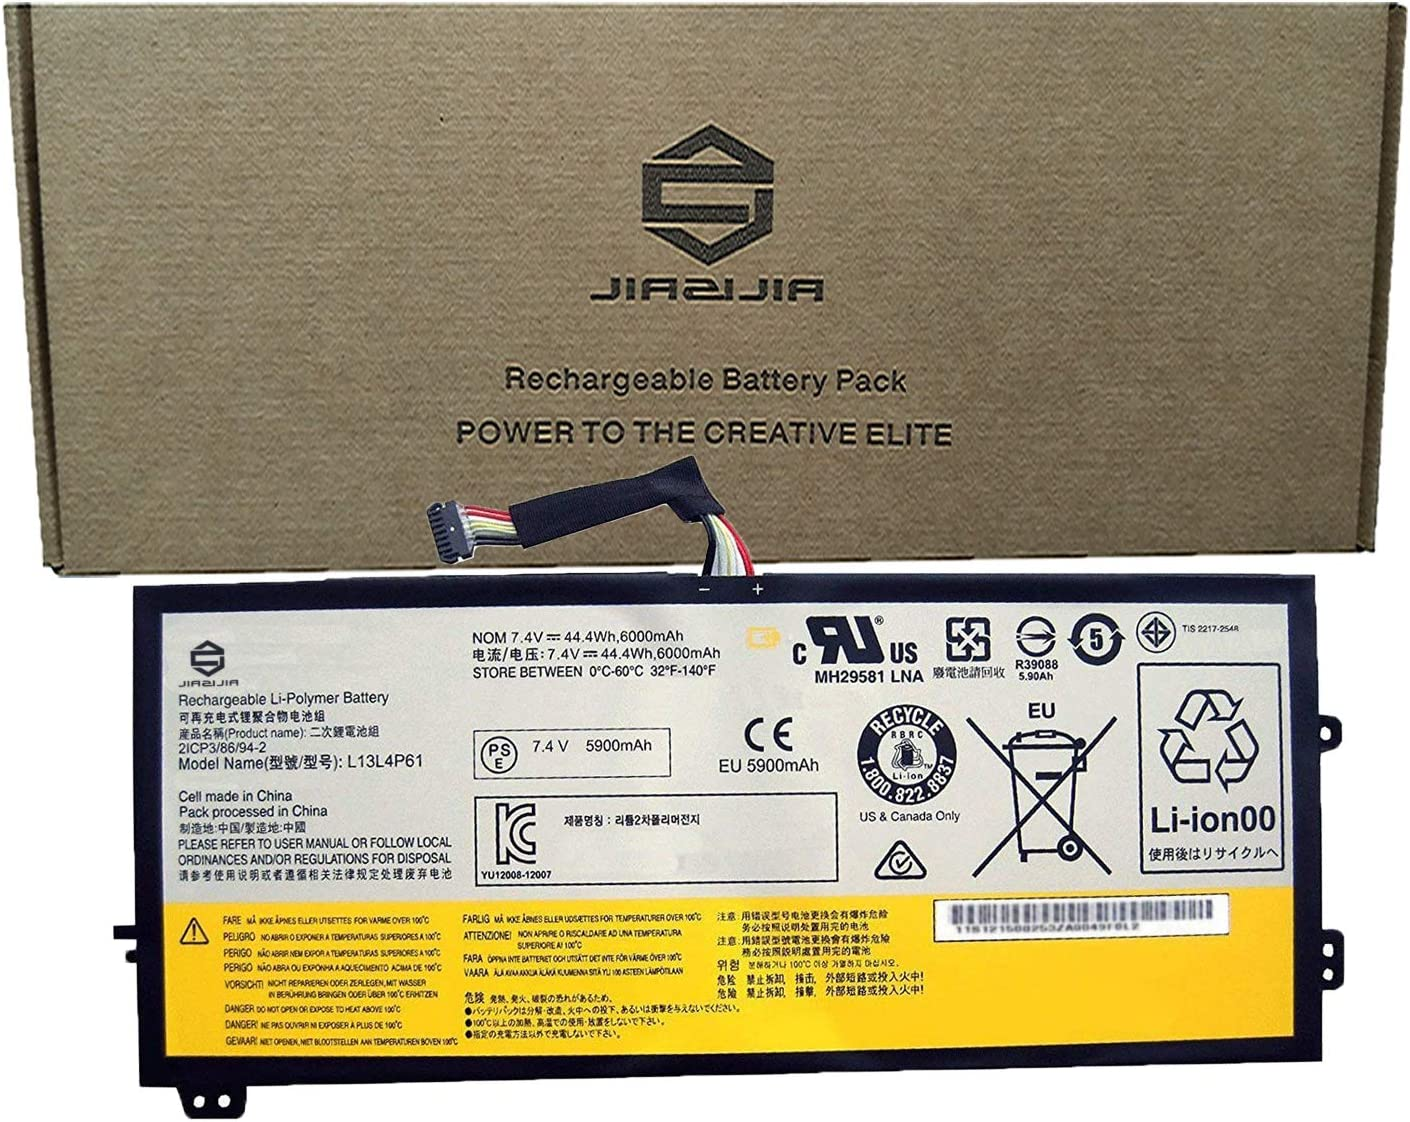 Amazon Com Jiazijia L13l4p61 Laptop Battery Replacement For Lenovo Thinkpad Edge 15 80h1 15 6 Inch Series Notebook L13m4p61 Black 7 4v 44 4wh 6000mah Computers Accessories